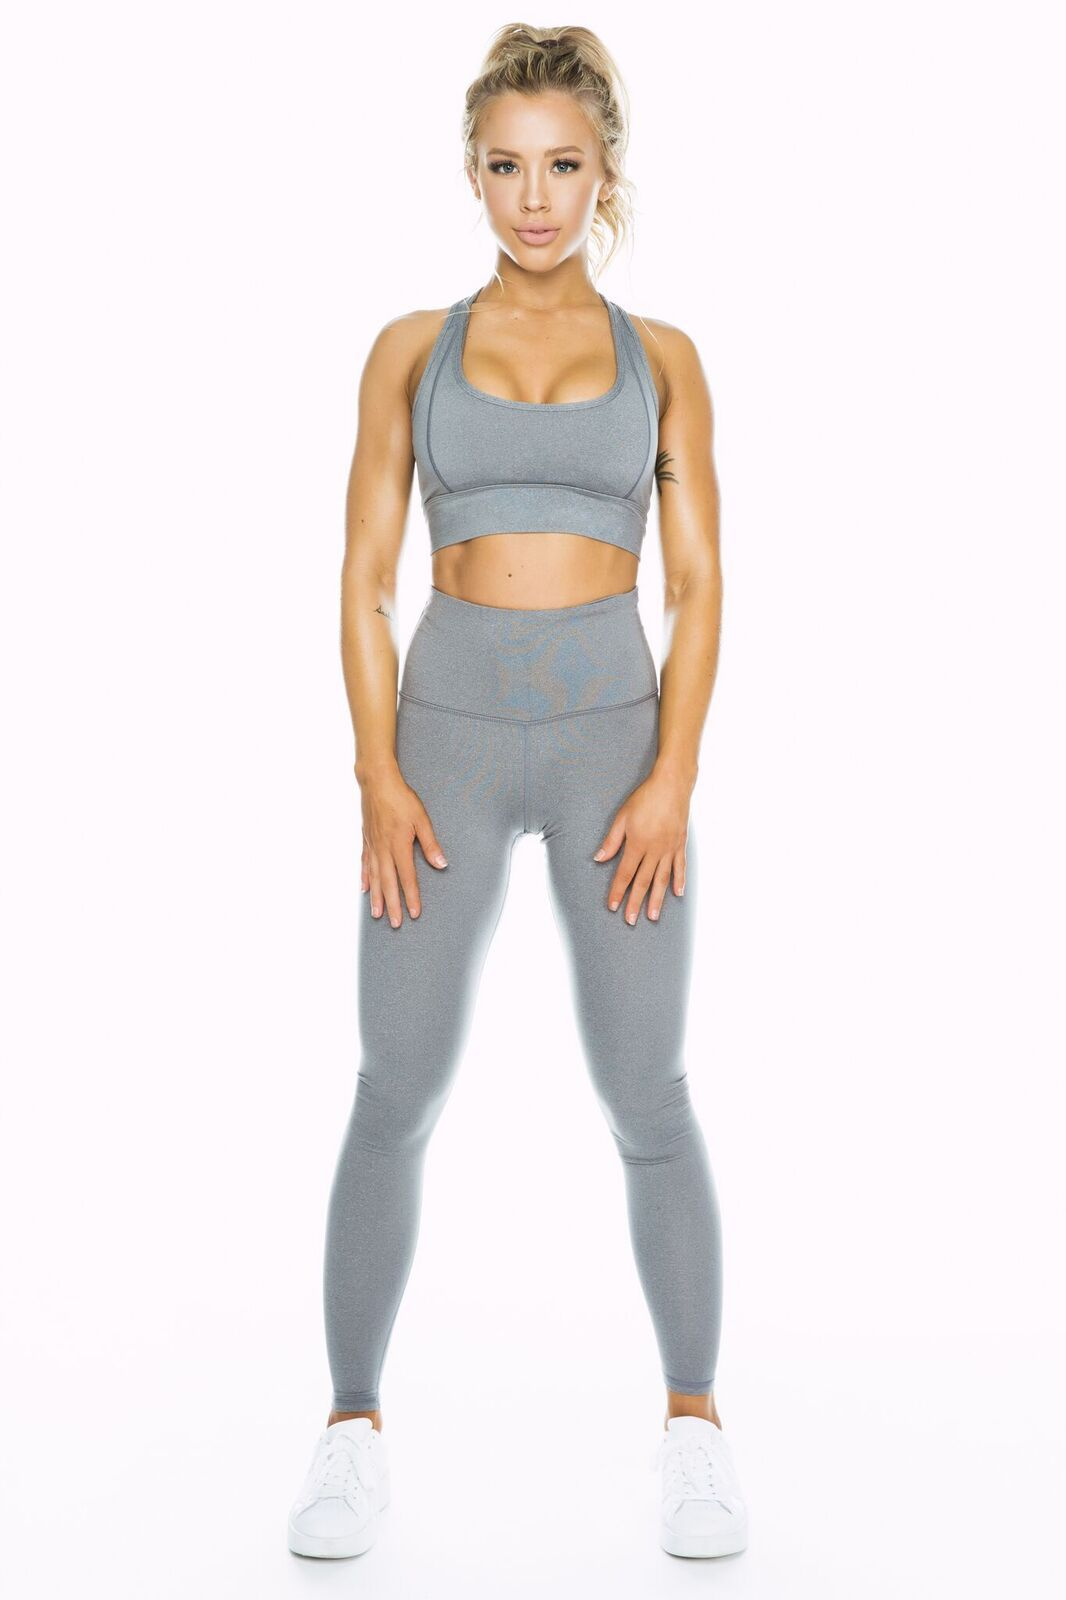 Yoga Pants Sports & Entertainment 2019 Sexy Women Yoga Pants Mesh Leggings High Waist Fitness Yoga Leggings Sports Gym Athletic Pants Running Sportswear To Have A Unique National Style